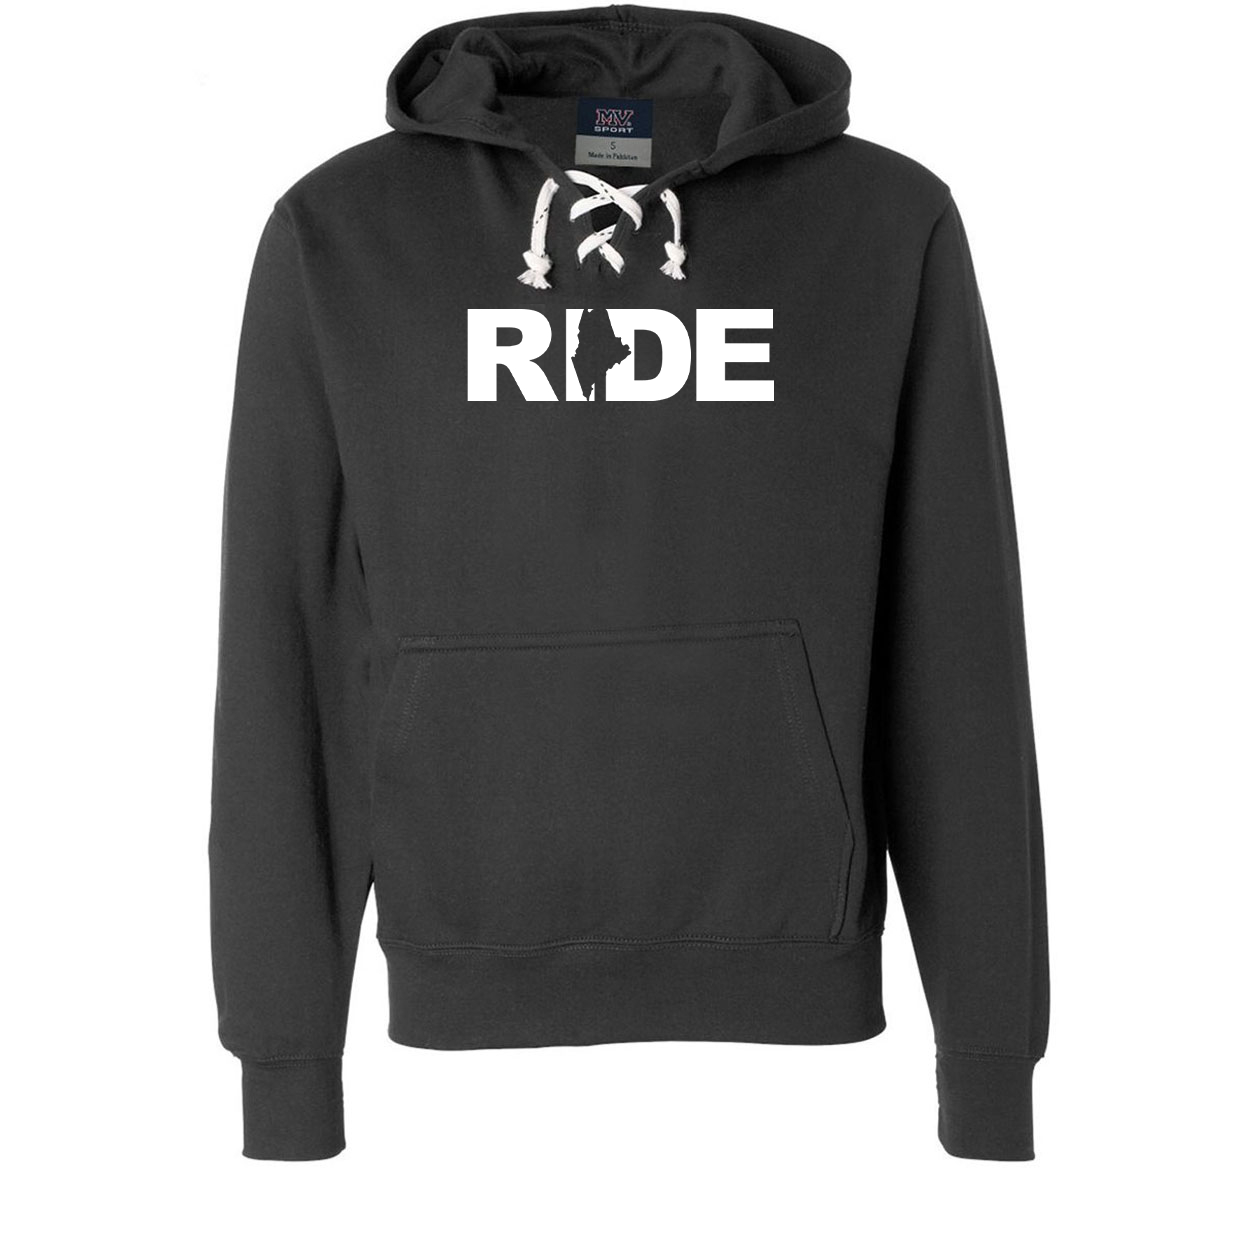 Ride Maine Classic Unisex Premium Hockey Sweatshirt Black (White Logo)